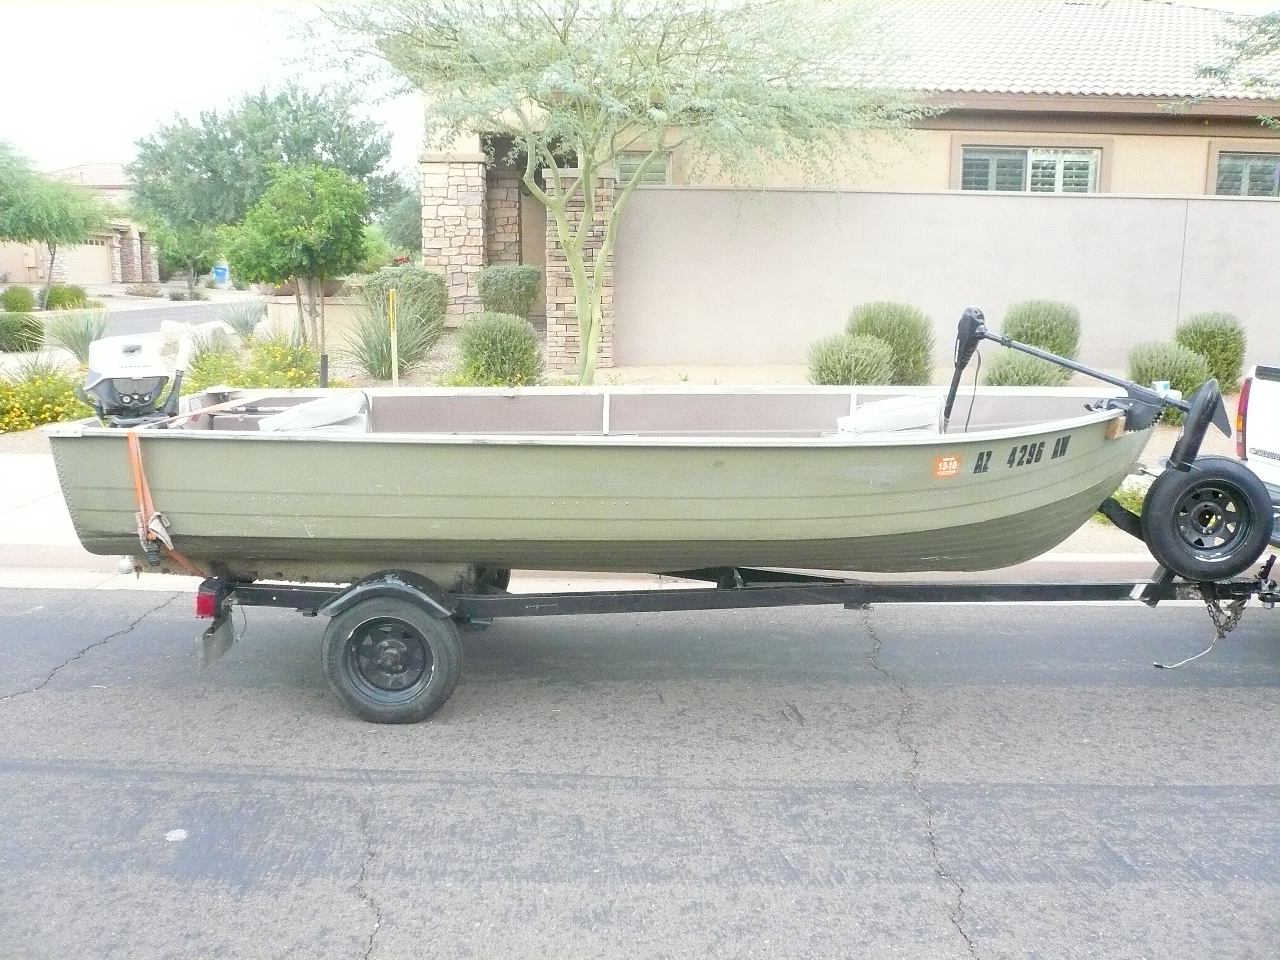 1980 mirrocraft aluminum fishing boat for sale for Metal fishing boat